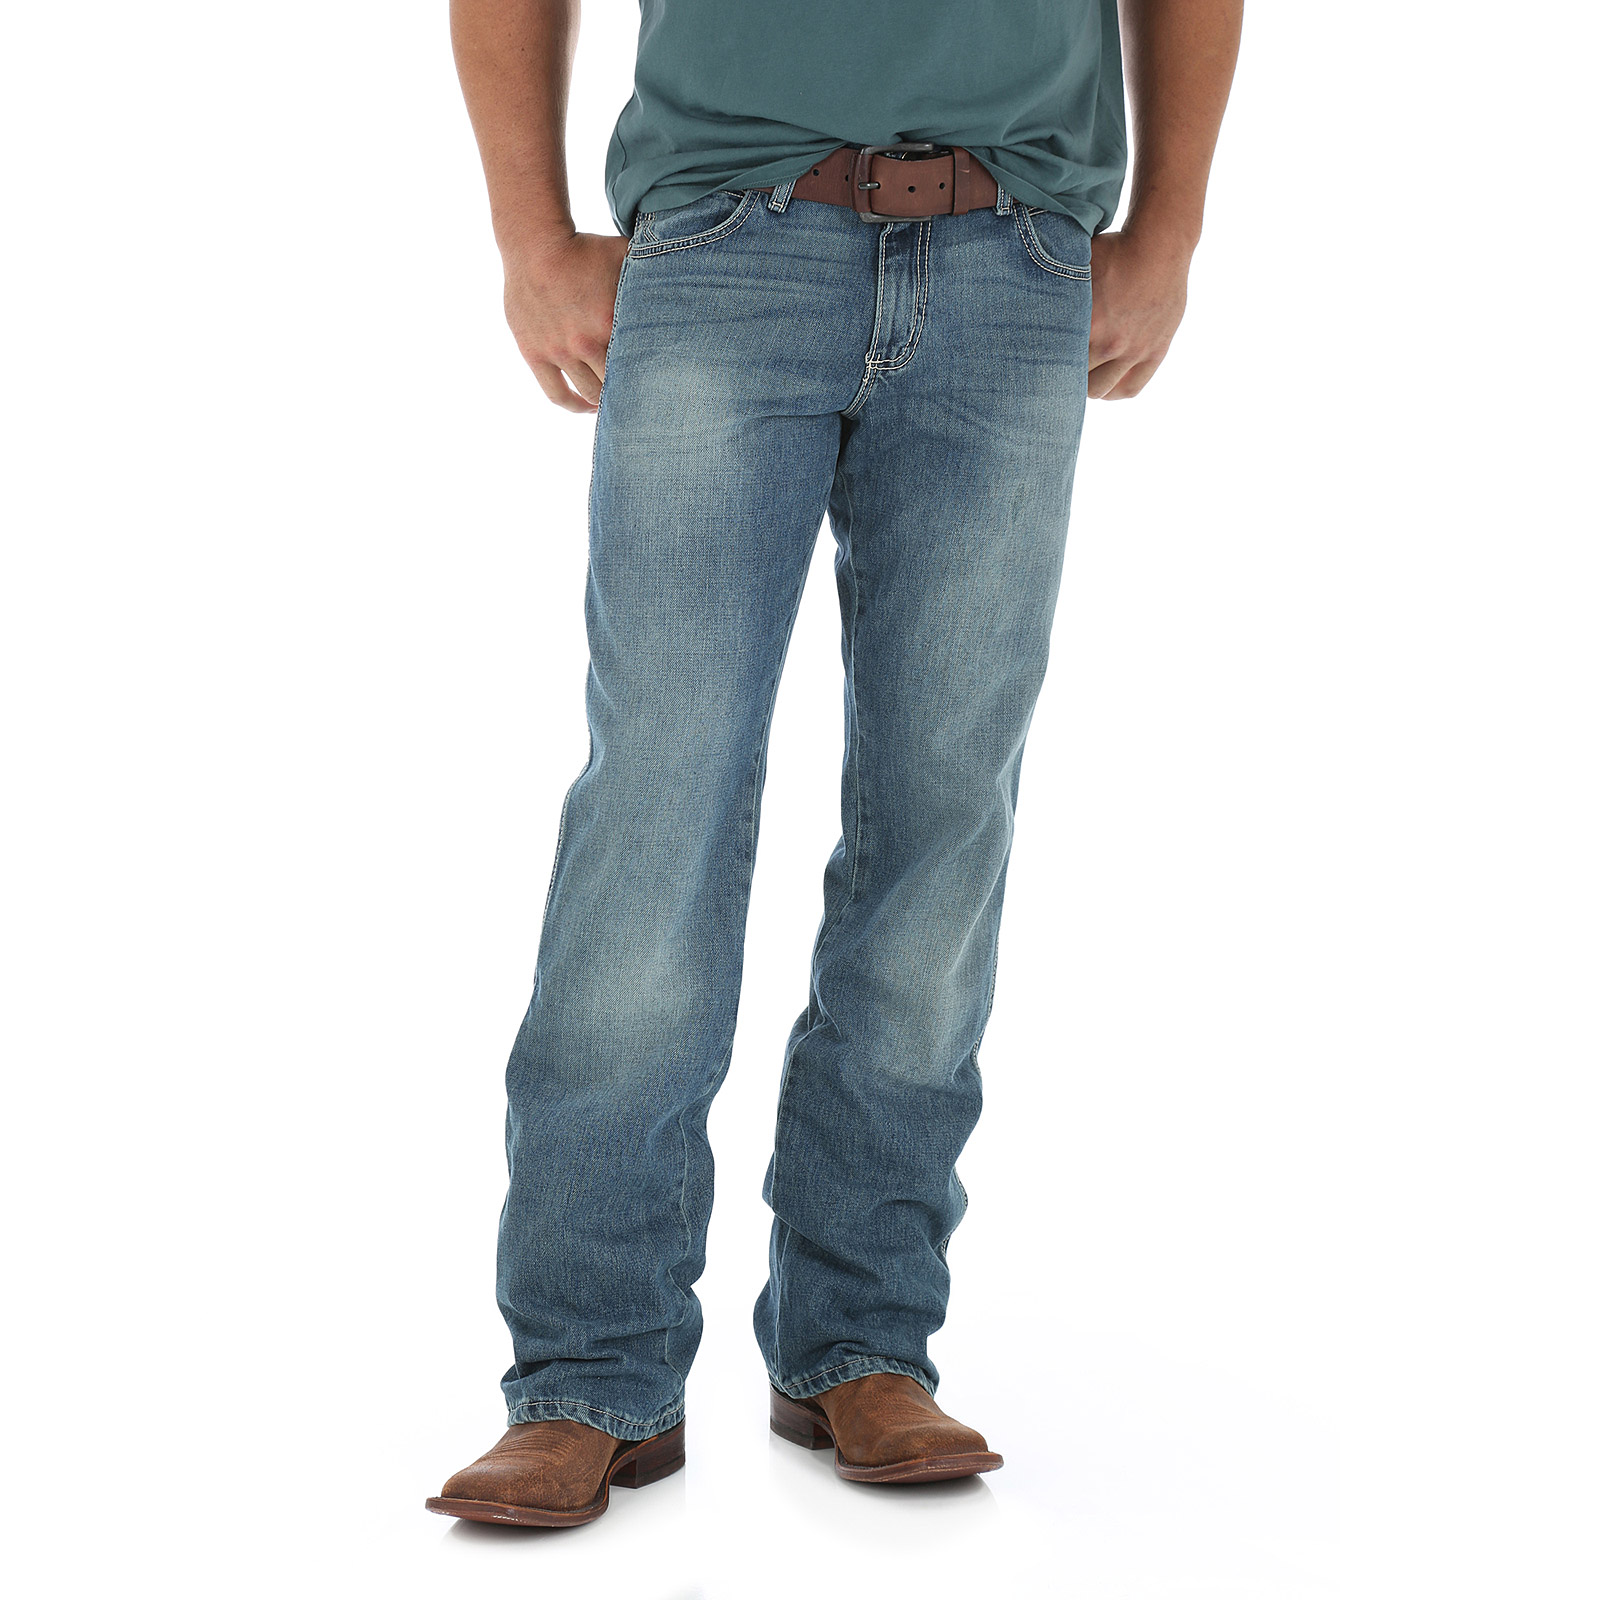 Fashion Tips For Wearing Bootcut - Style Jeans